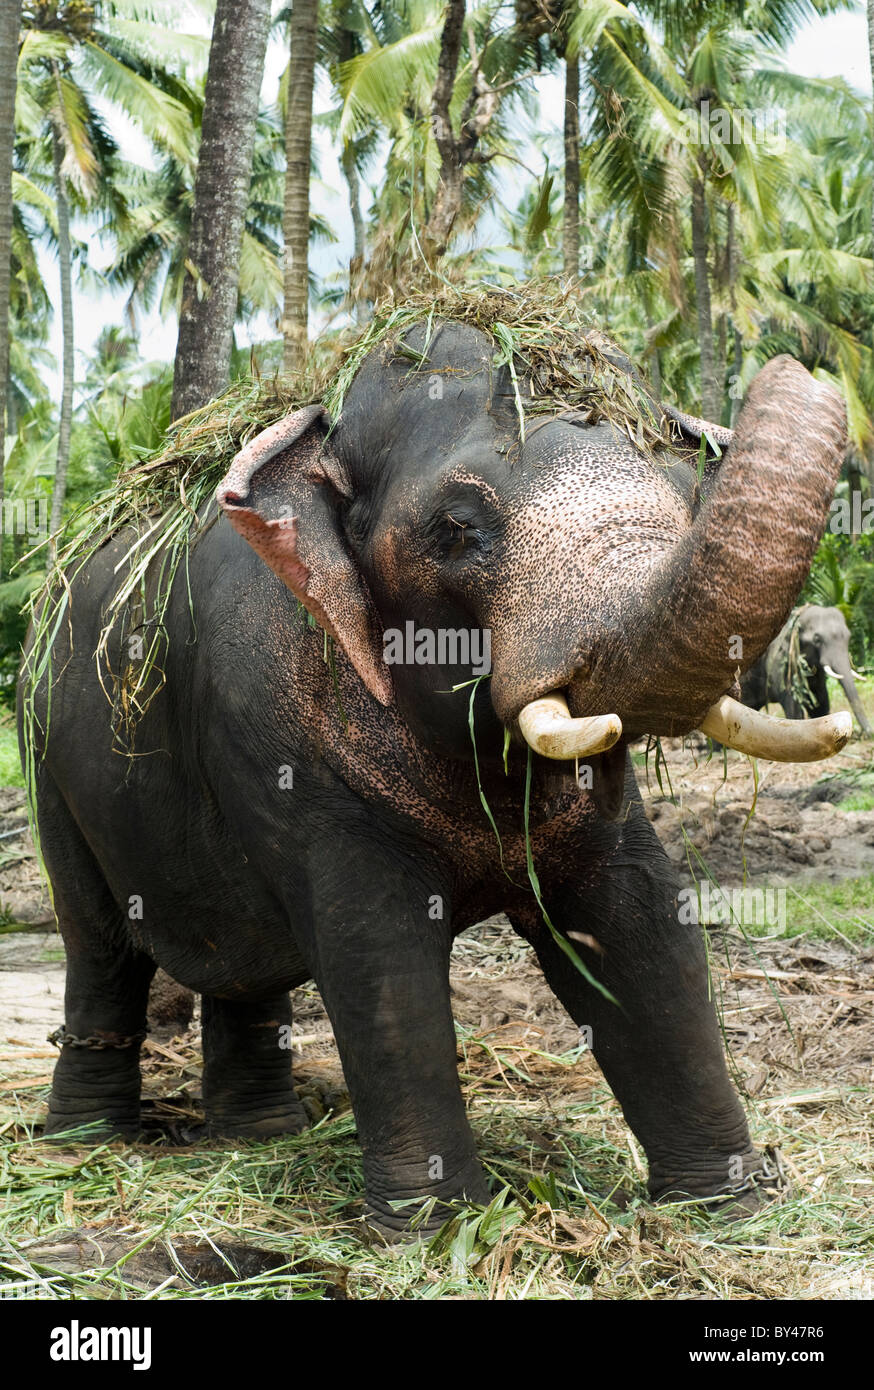 Elephant Sanctuary Stock Photos & Elephant Sanctuary Stock ...